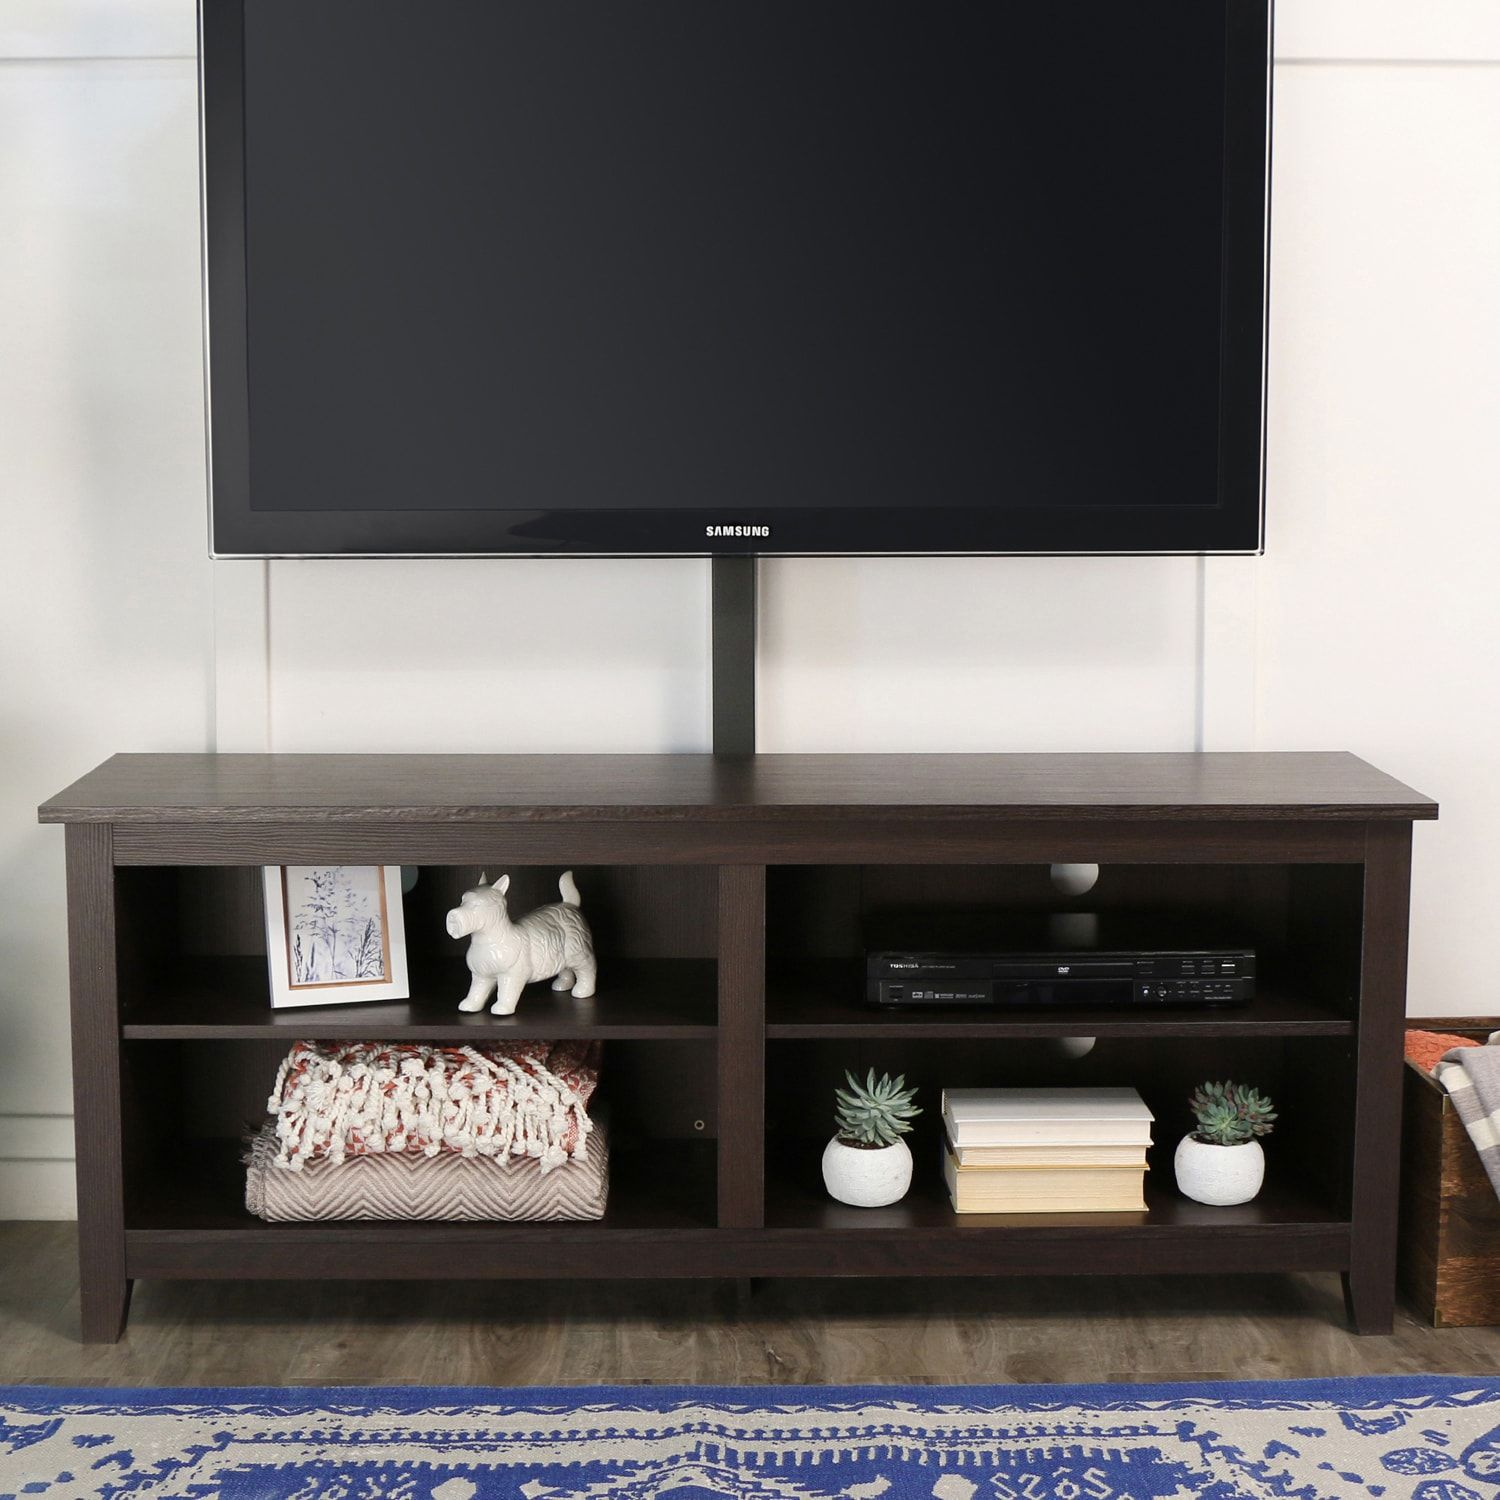 58 Espresso Tv Stand Console With Mount Tv Stand Wood Tv Stand With Mount Wood Tv Stand Rustic